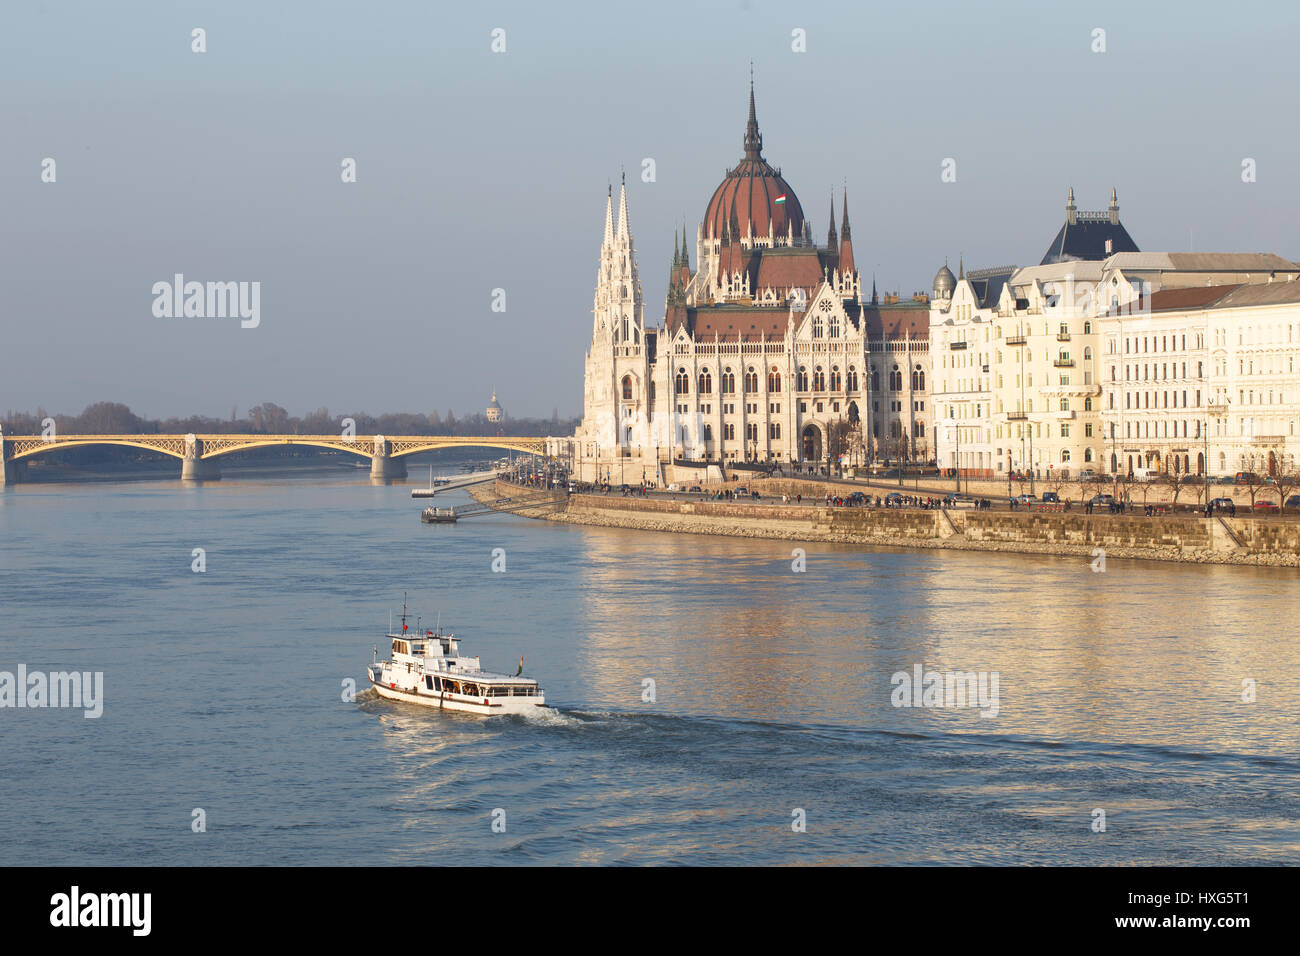 Parliament building at river Danube and ship, Budapest, Hungary Stock Photo